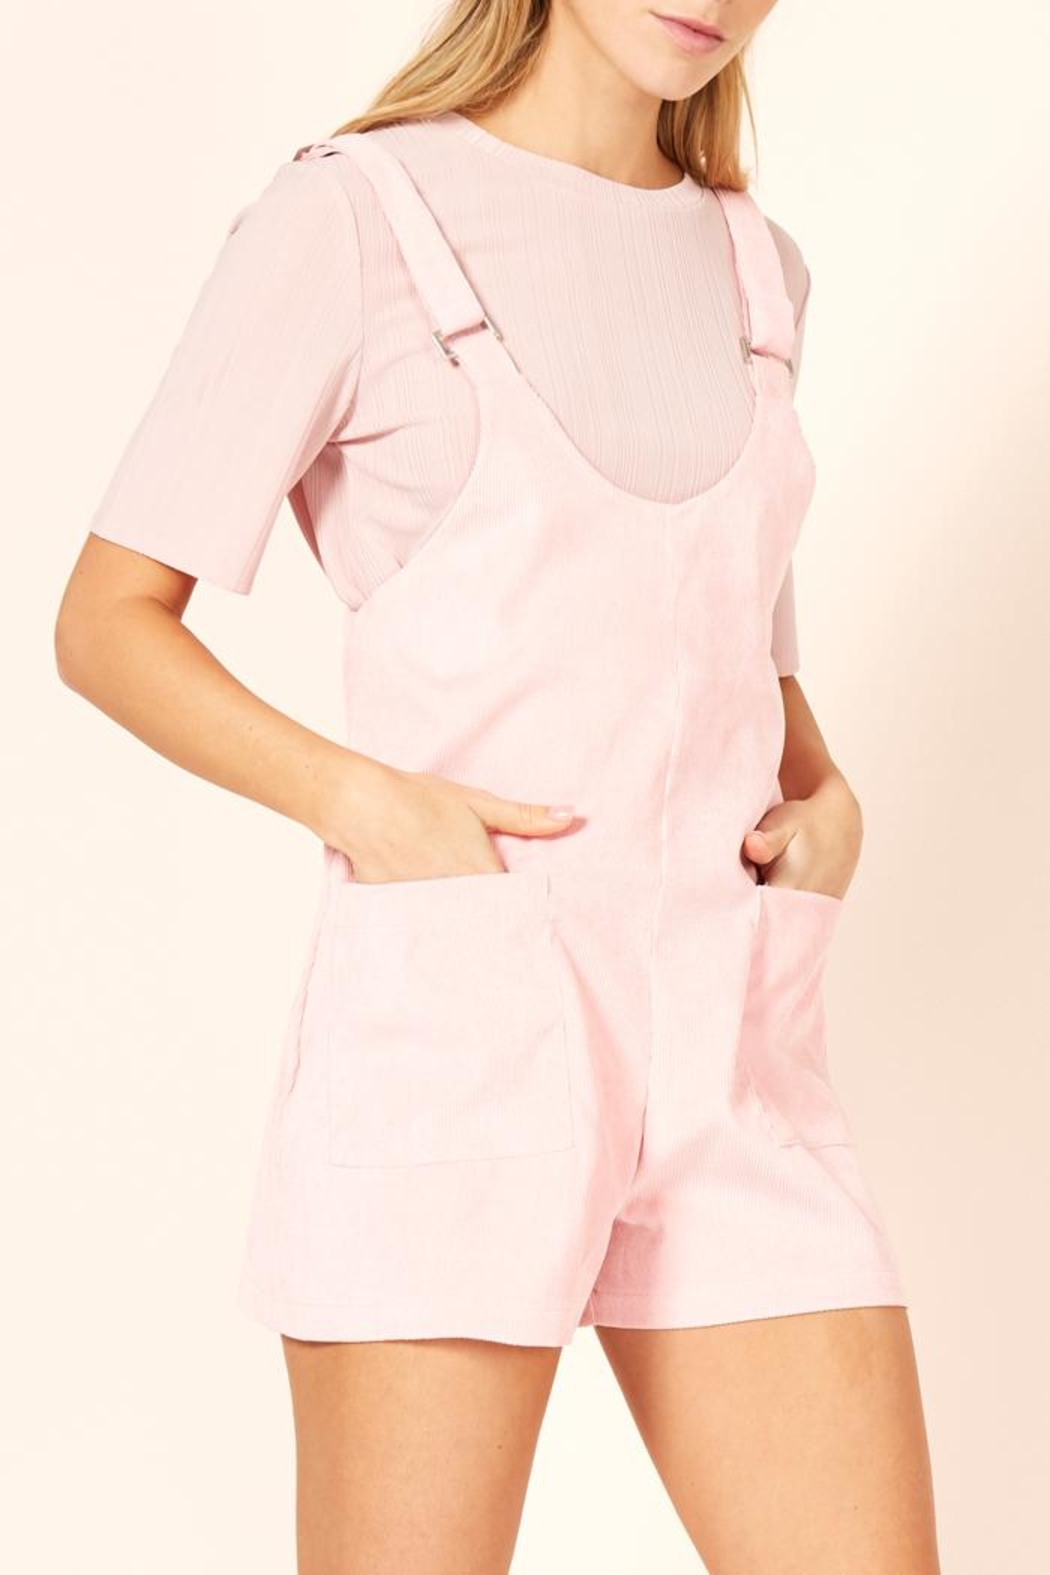 MinkPink Pink Overall Romper - Front Full Image